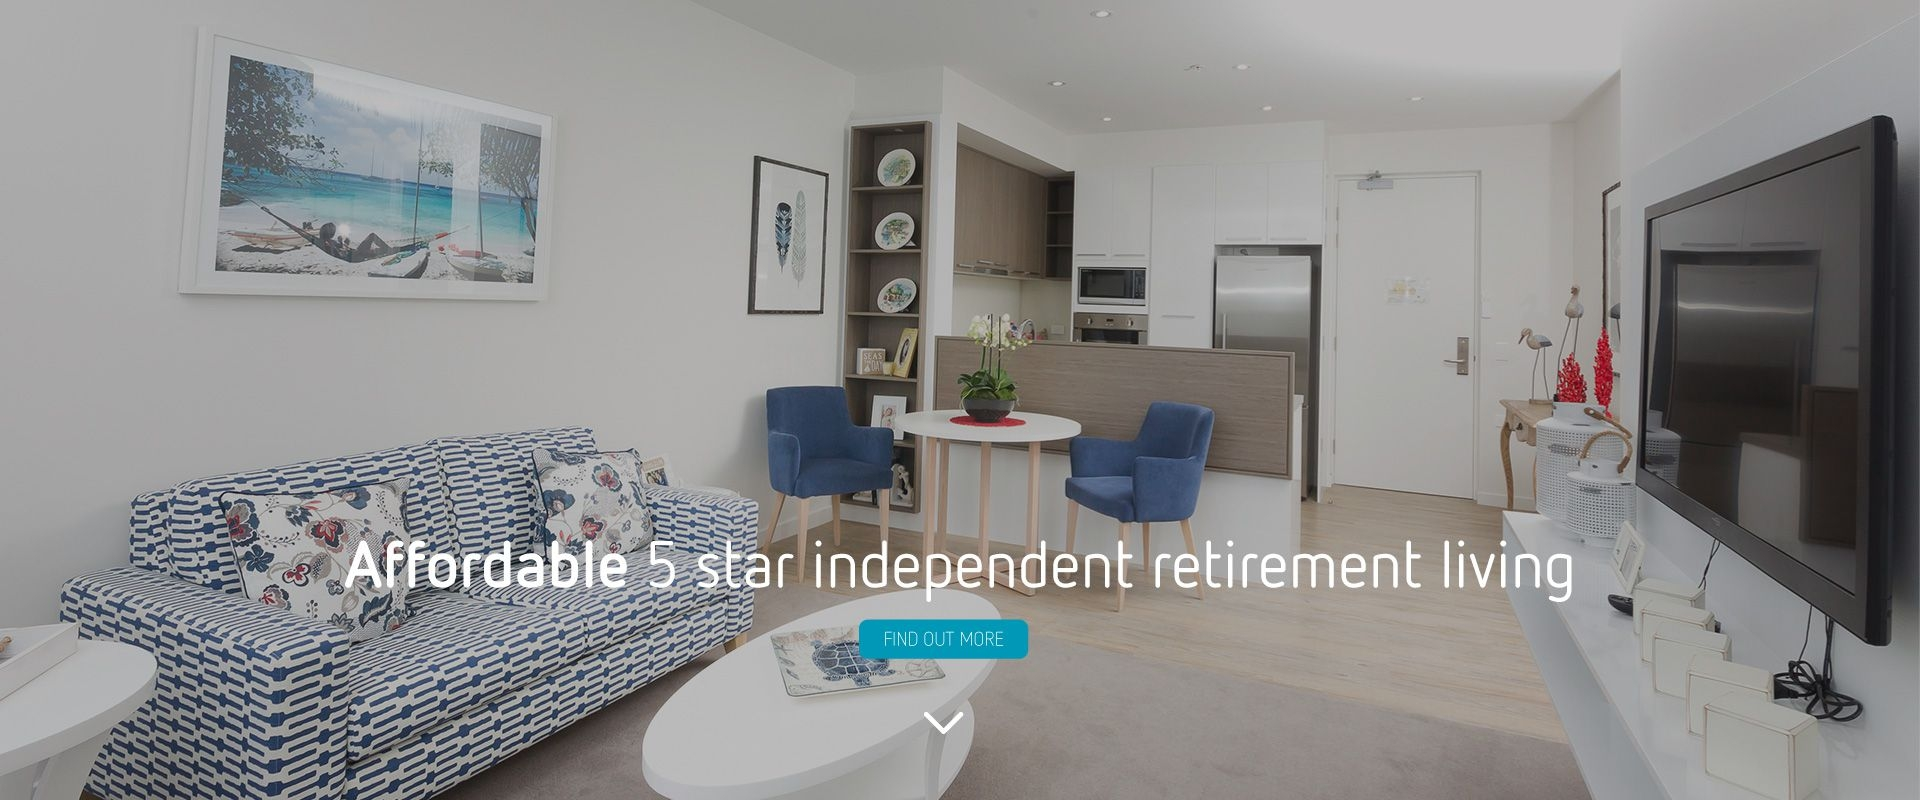 Affordable 5 star independent retirement living